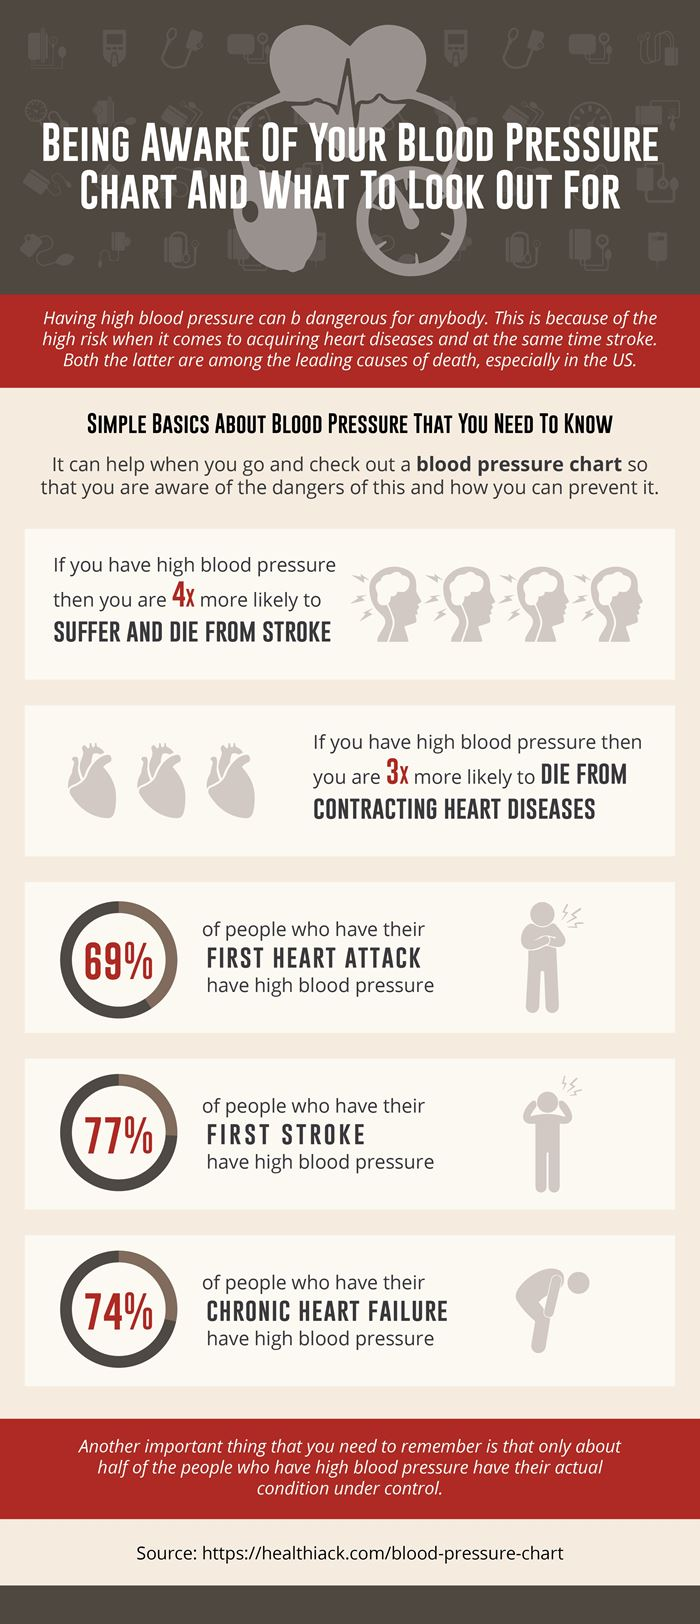 Home blood pressure chart for men and women nvjuhfo Image collections